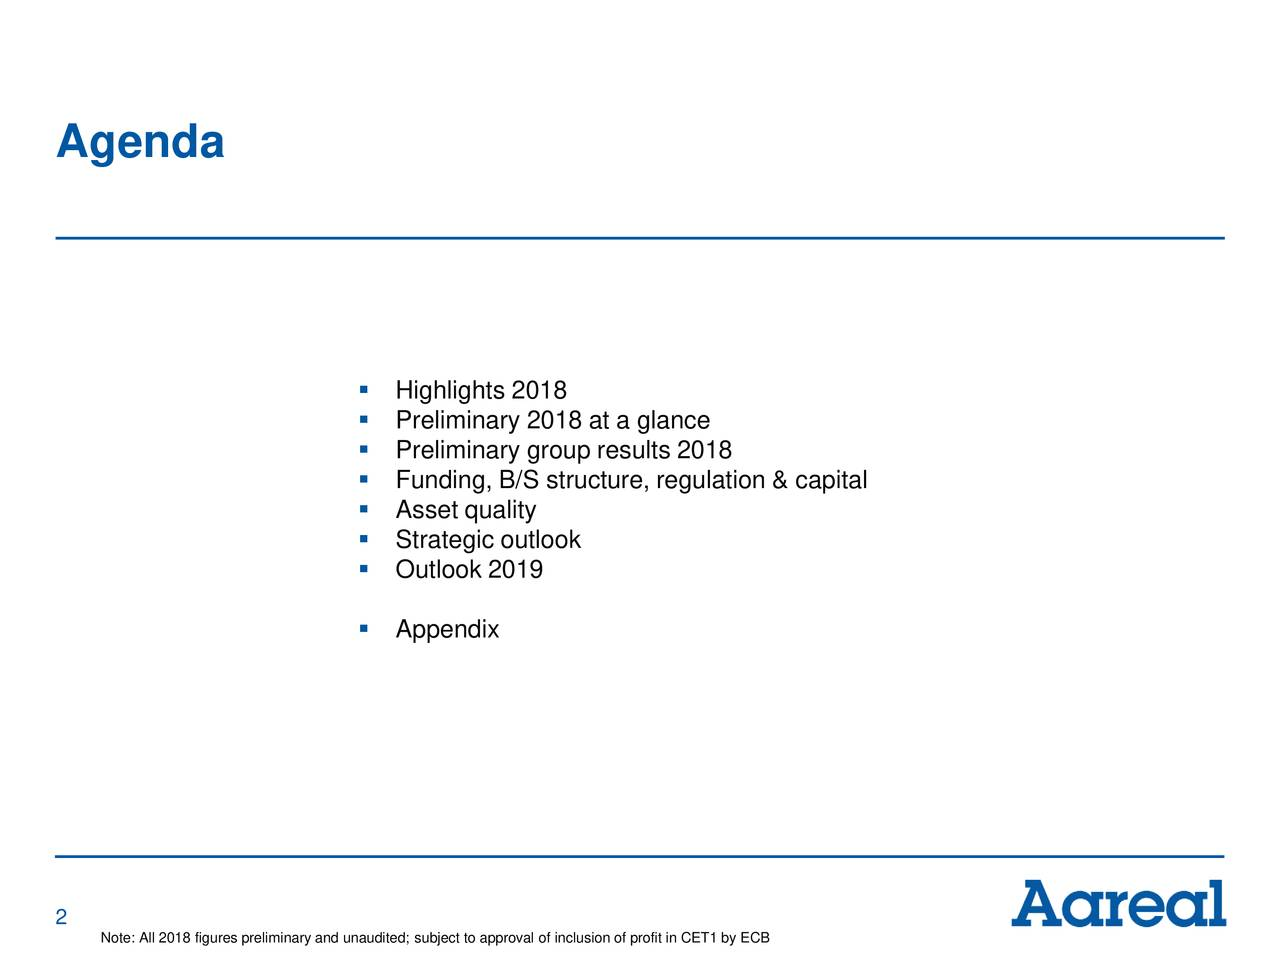 ▪ Highlights 2018 ▪ Preliminary 2018 at a glance ▪ Preliminary group results 2018 ▪ Funding, B/S structure, regulation & capital ▪ Asset quality ▪ Strategic outlook ▪ Outlook 2019 ▪ Appendix 2 Note: All 2018 figures preliminary and unaudited; subject to approval of inclusion of profit in CET1 by ECB